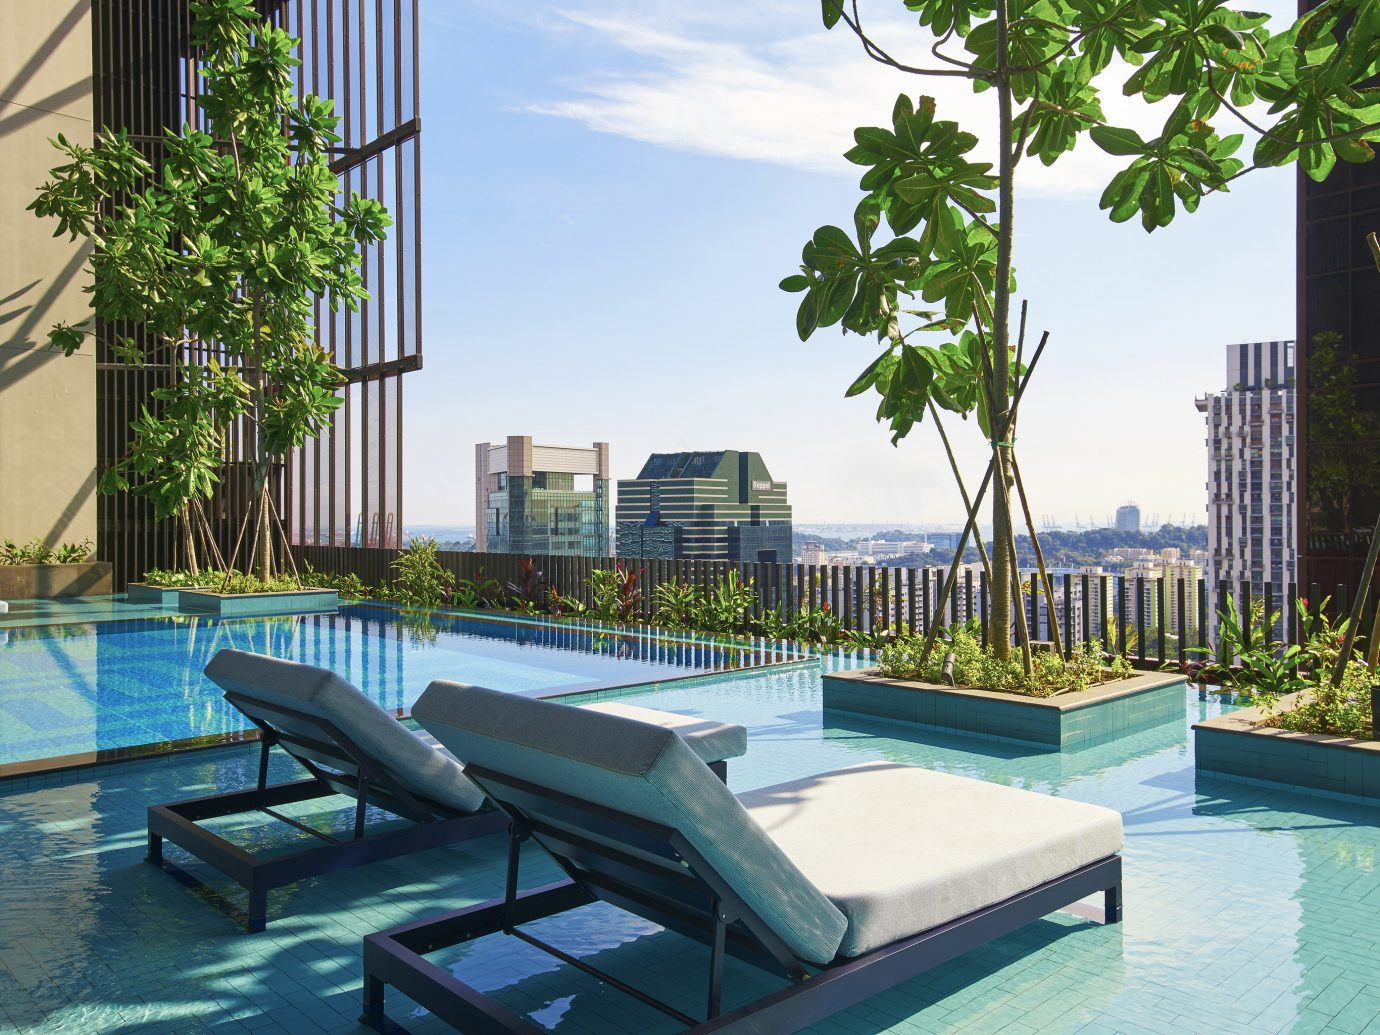 Hotels outdoor water condominium swimming pool leisure property Resort estate Villa vacation home real estate backyard mansion Courtyard Pool apartment plaza Deck several